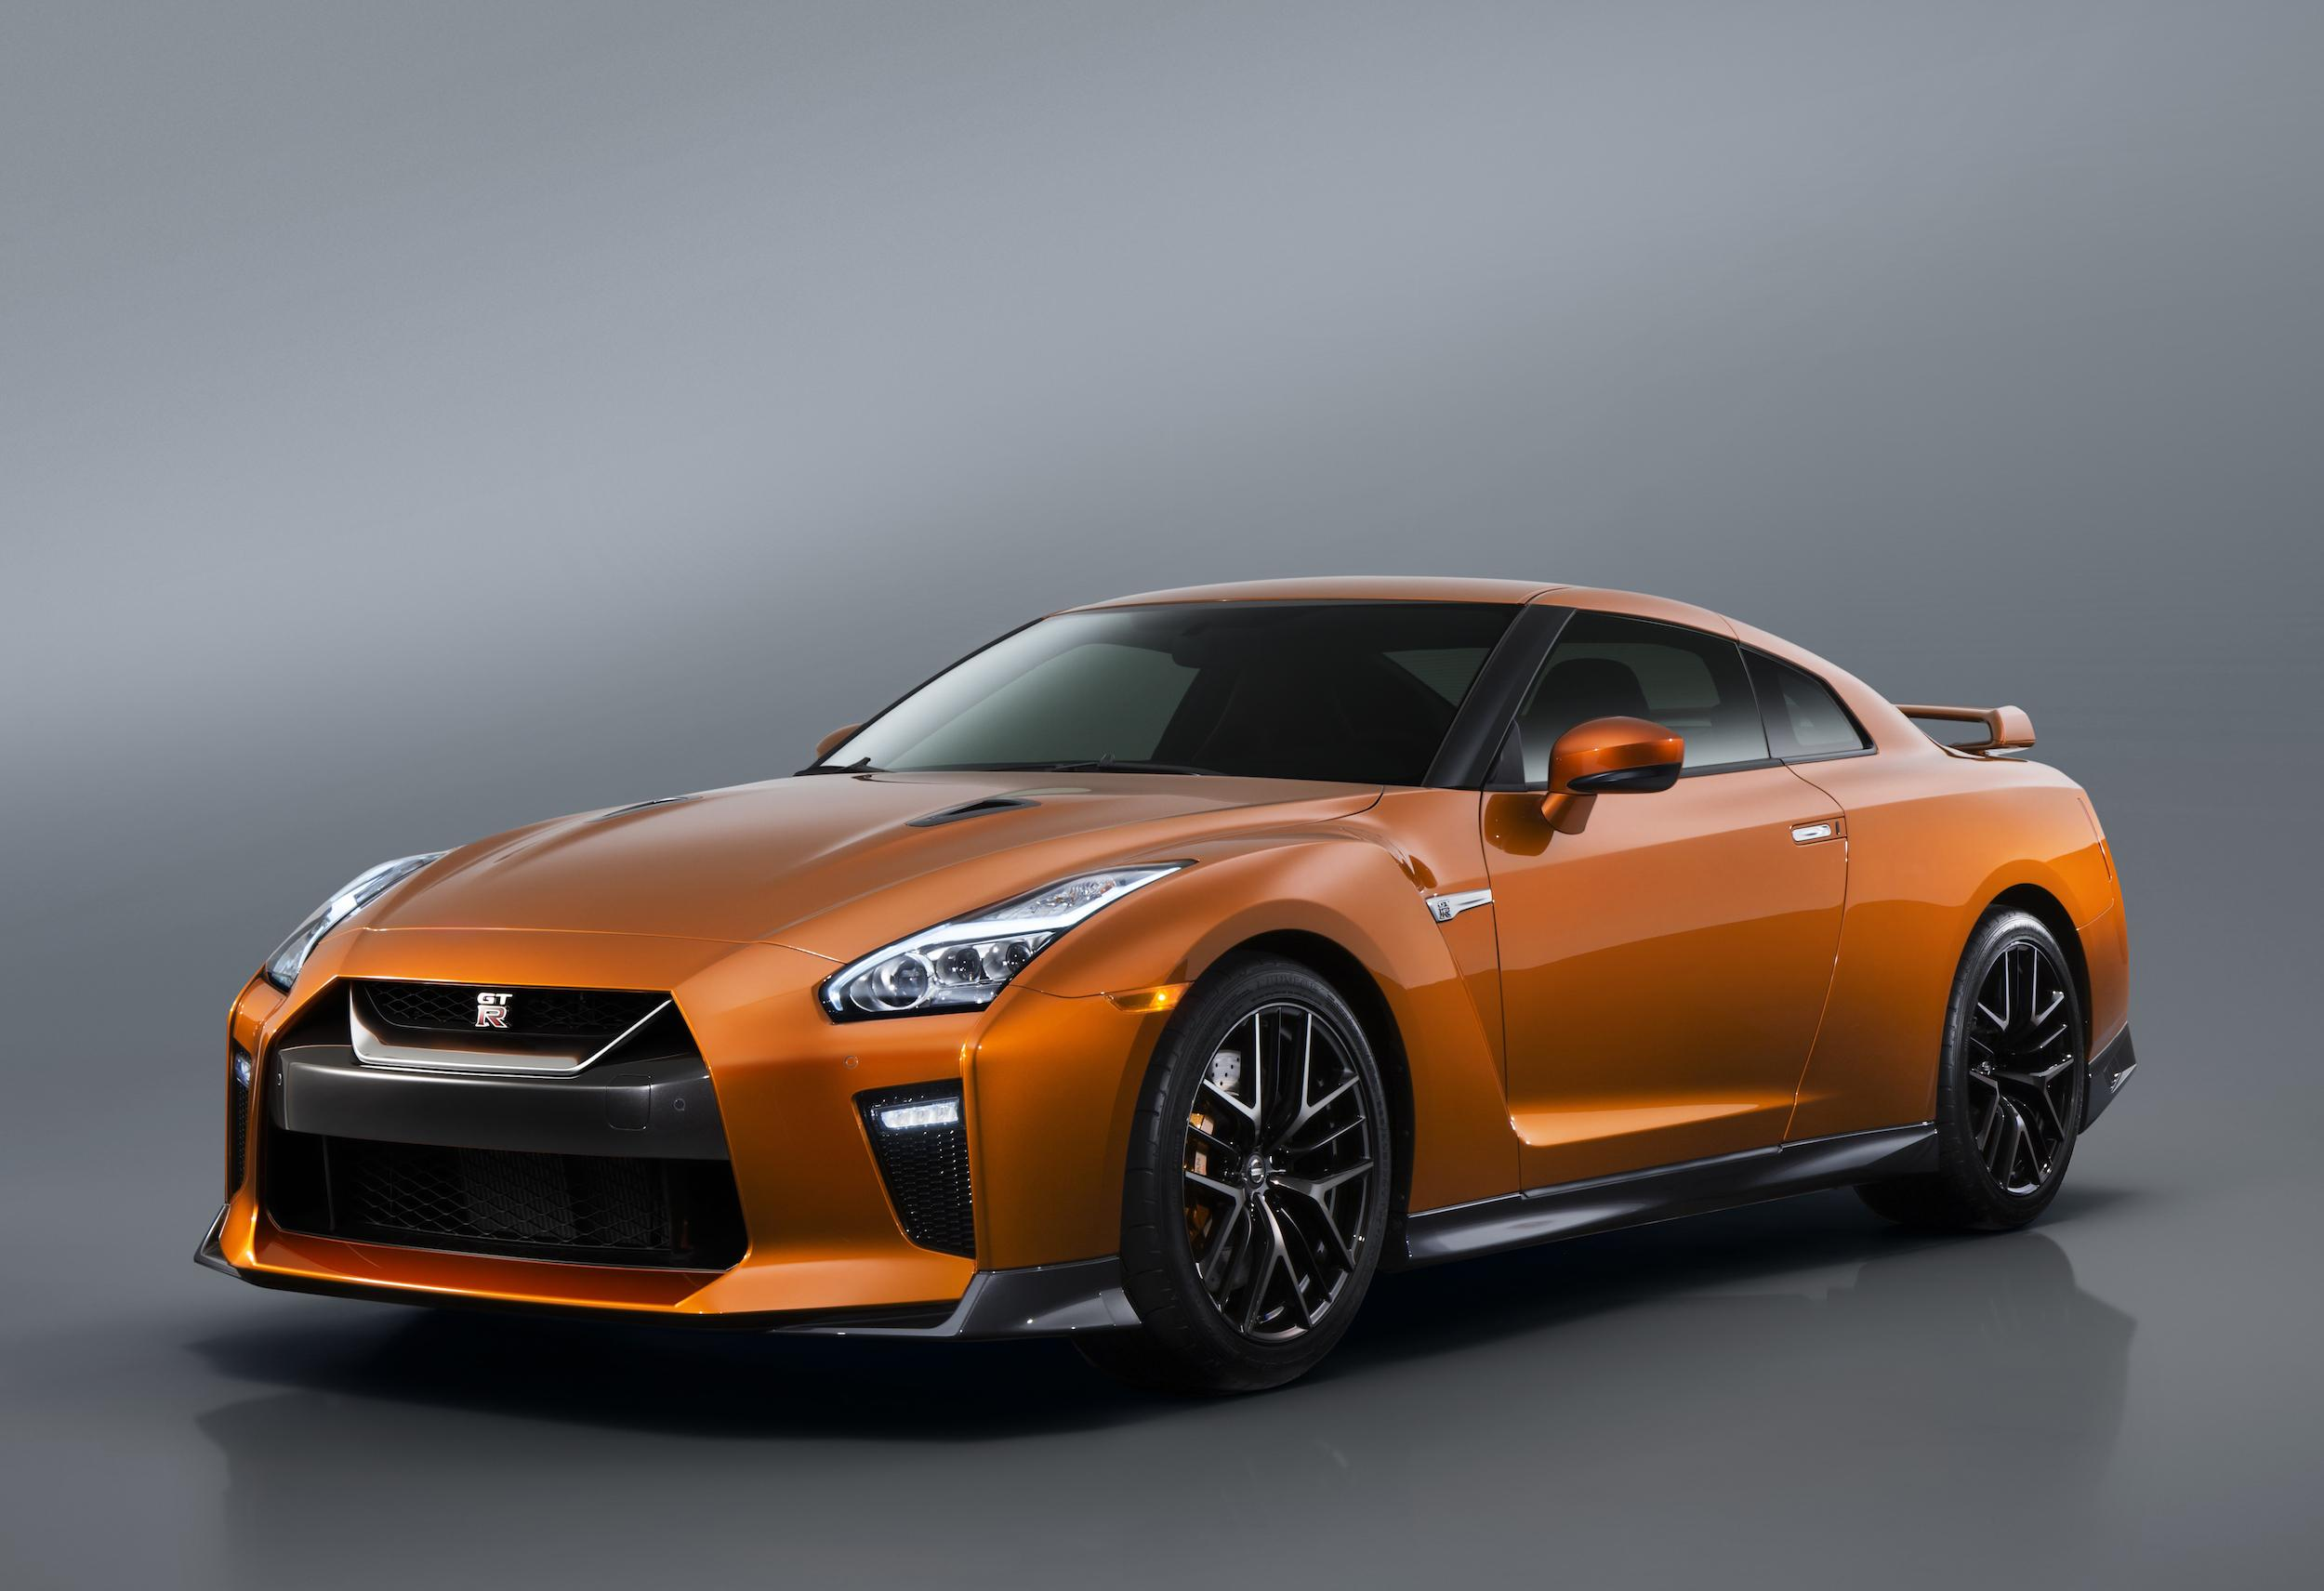 Nissan Gt R R35 570ps Laptimes Specs Performance Data